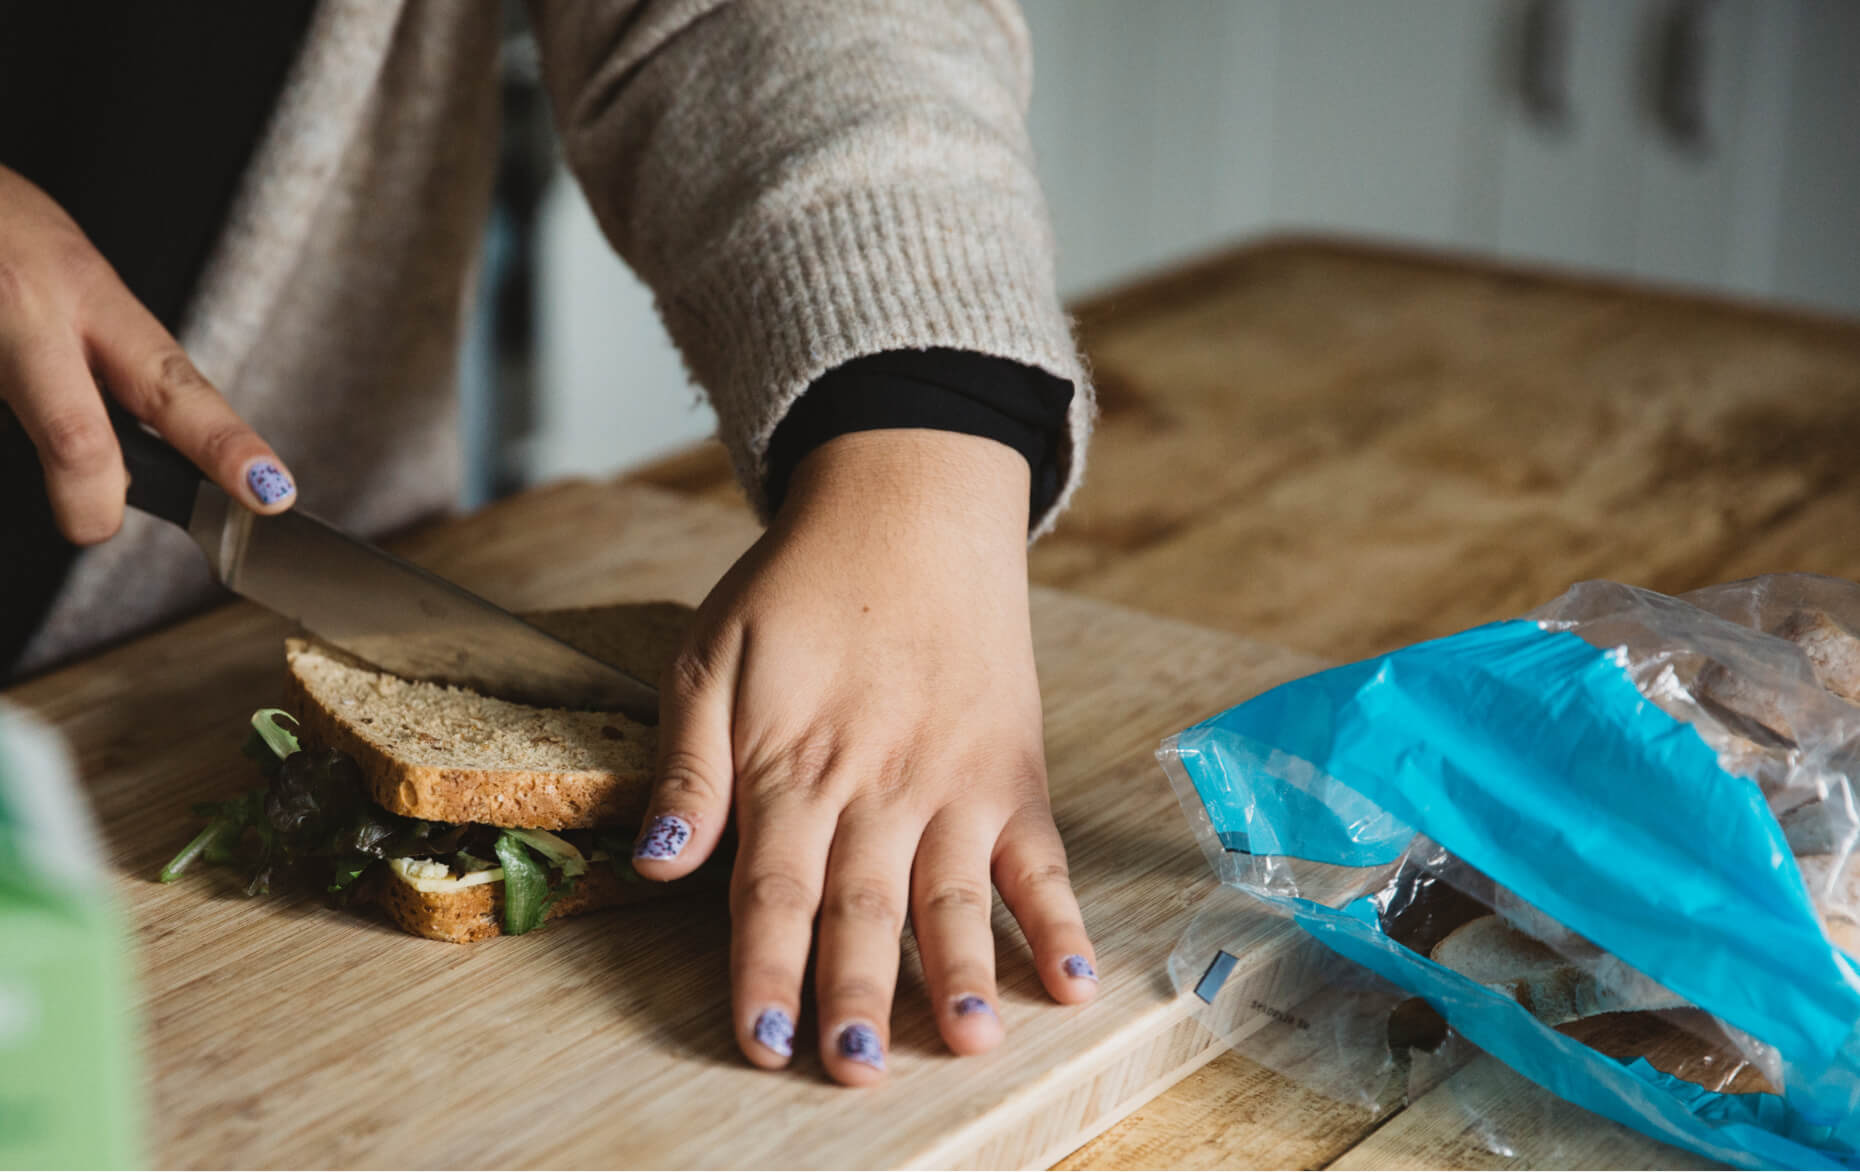 Carer cuts a sandwich on a wooden chopping board